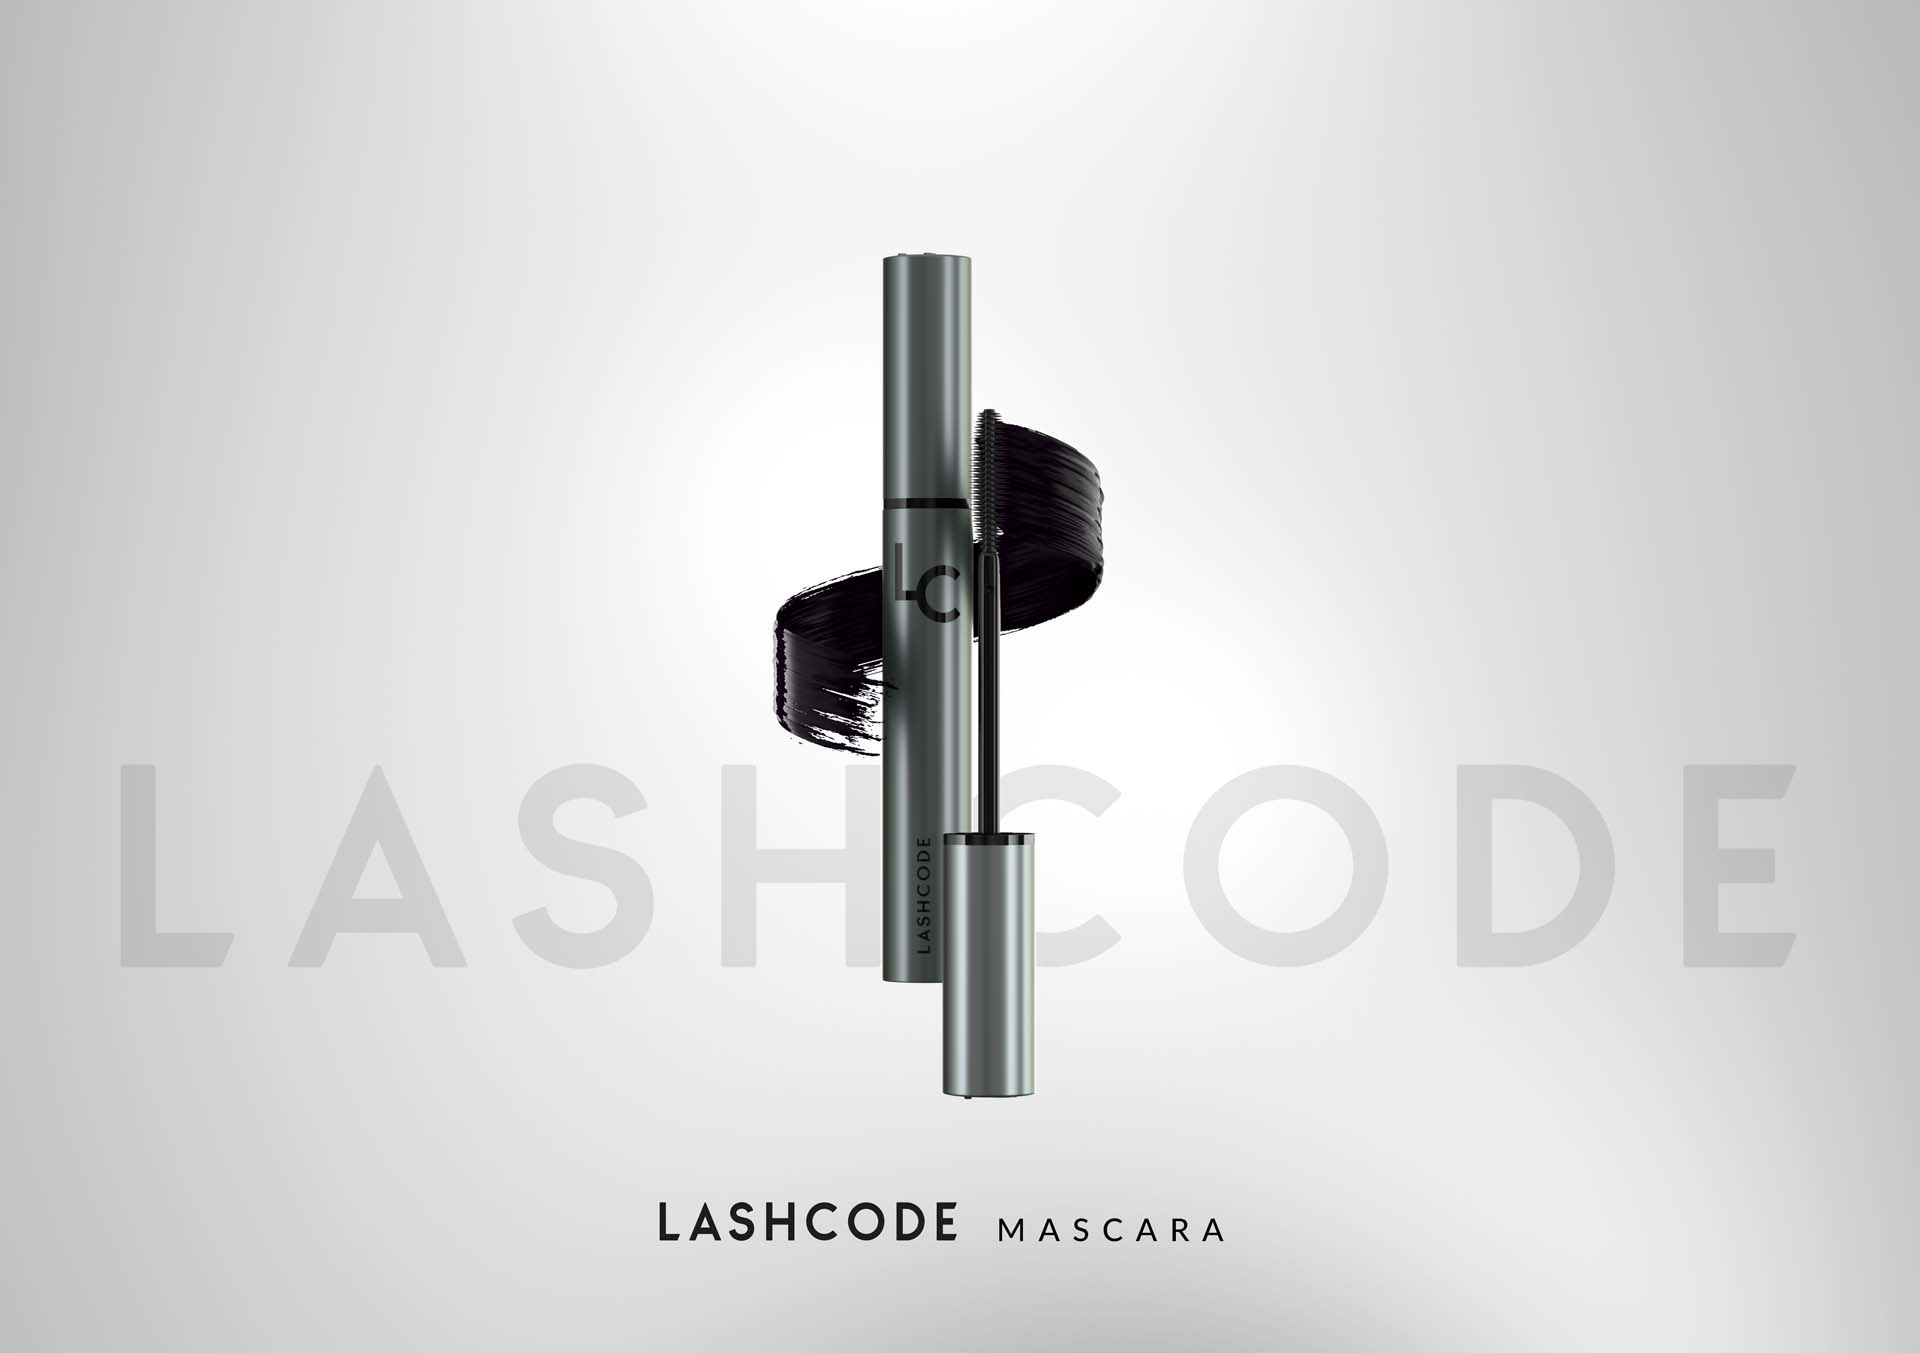 Lashcode Mascara. Definition of Beauty in Luxury Version